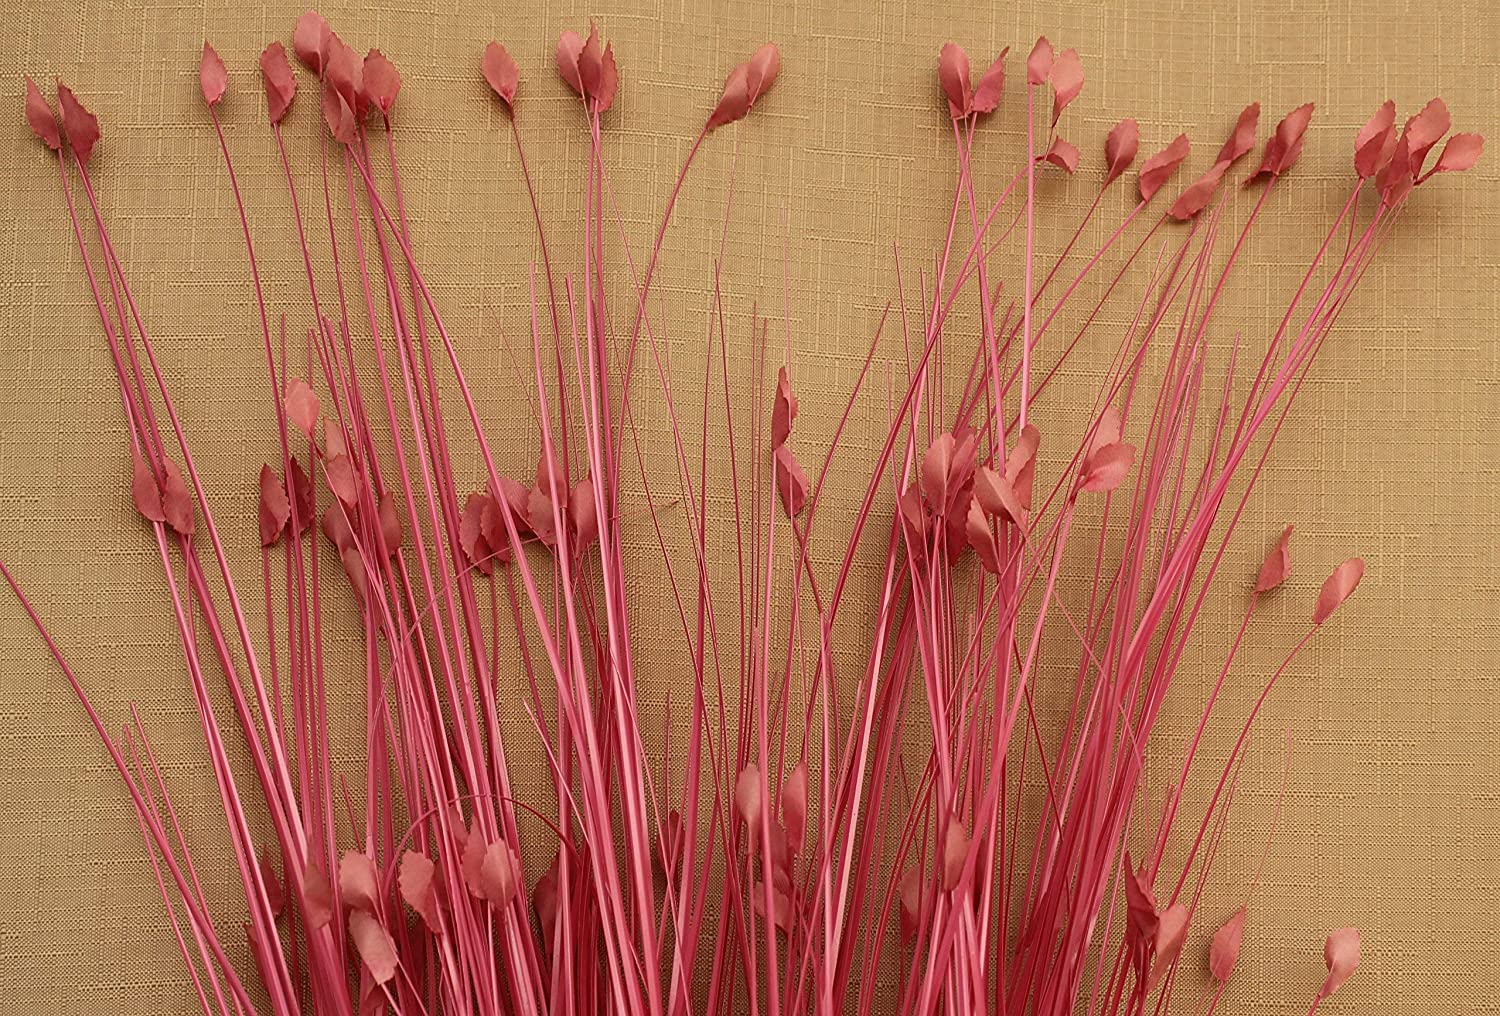 DECORATIVE GRASSES LEAF TIPPED 80CM BRIGHT PINK 6 STEMS SIMPLY GIFTS ARTIFICIAL PLASTIC